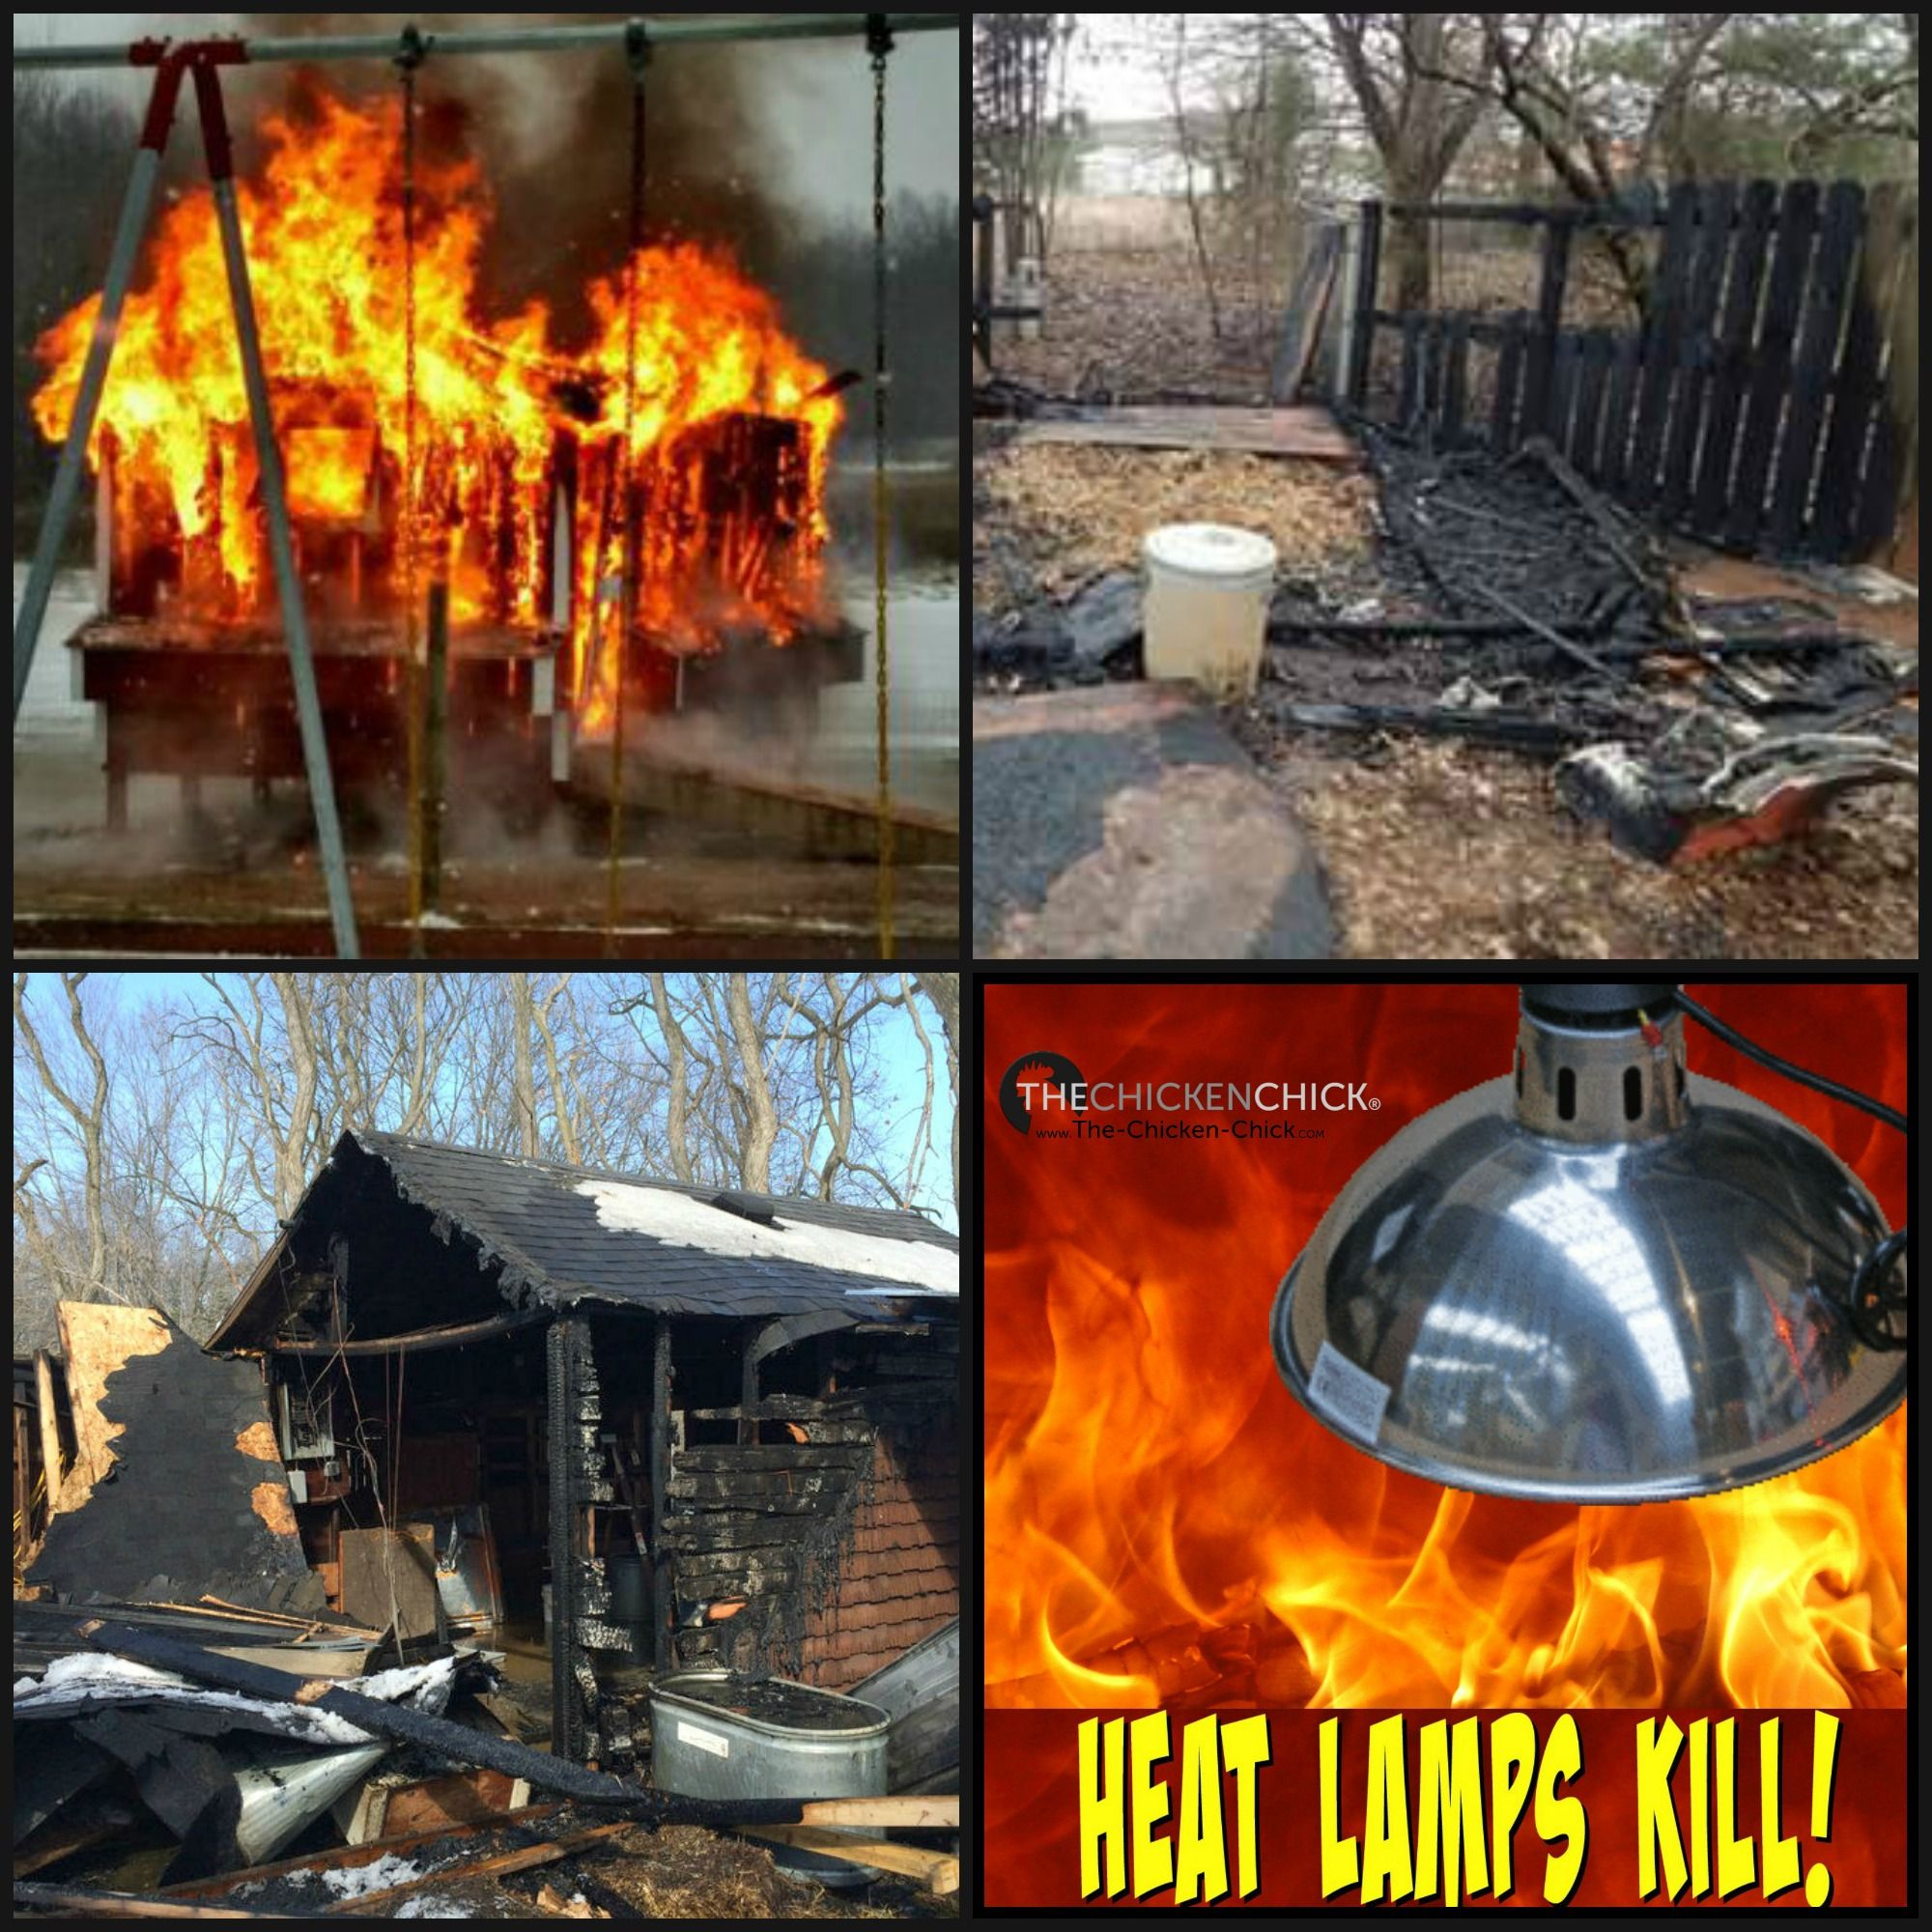 Awesome 15 Chickens Die In Chicken Coop Fire Caused By A Heat Lamp. Geneva, New